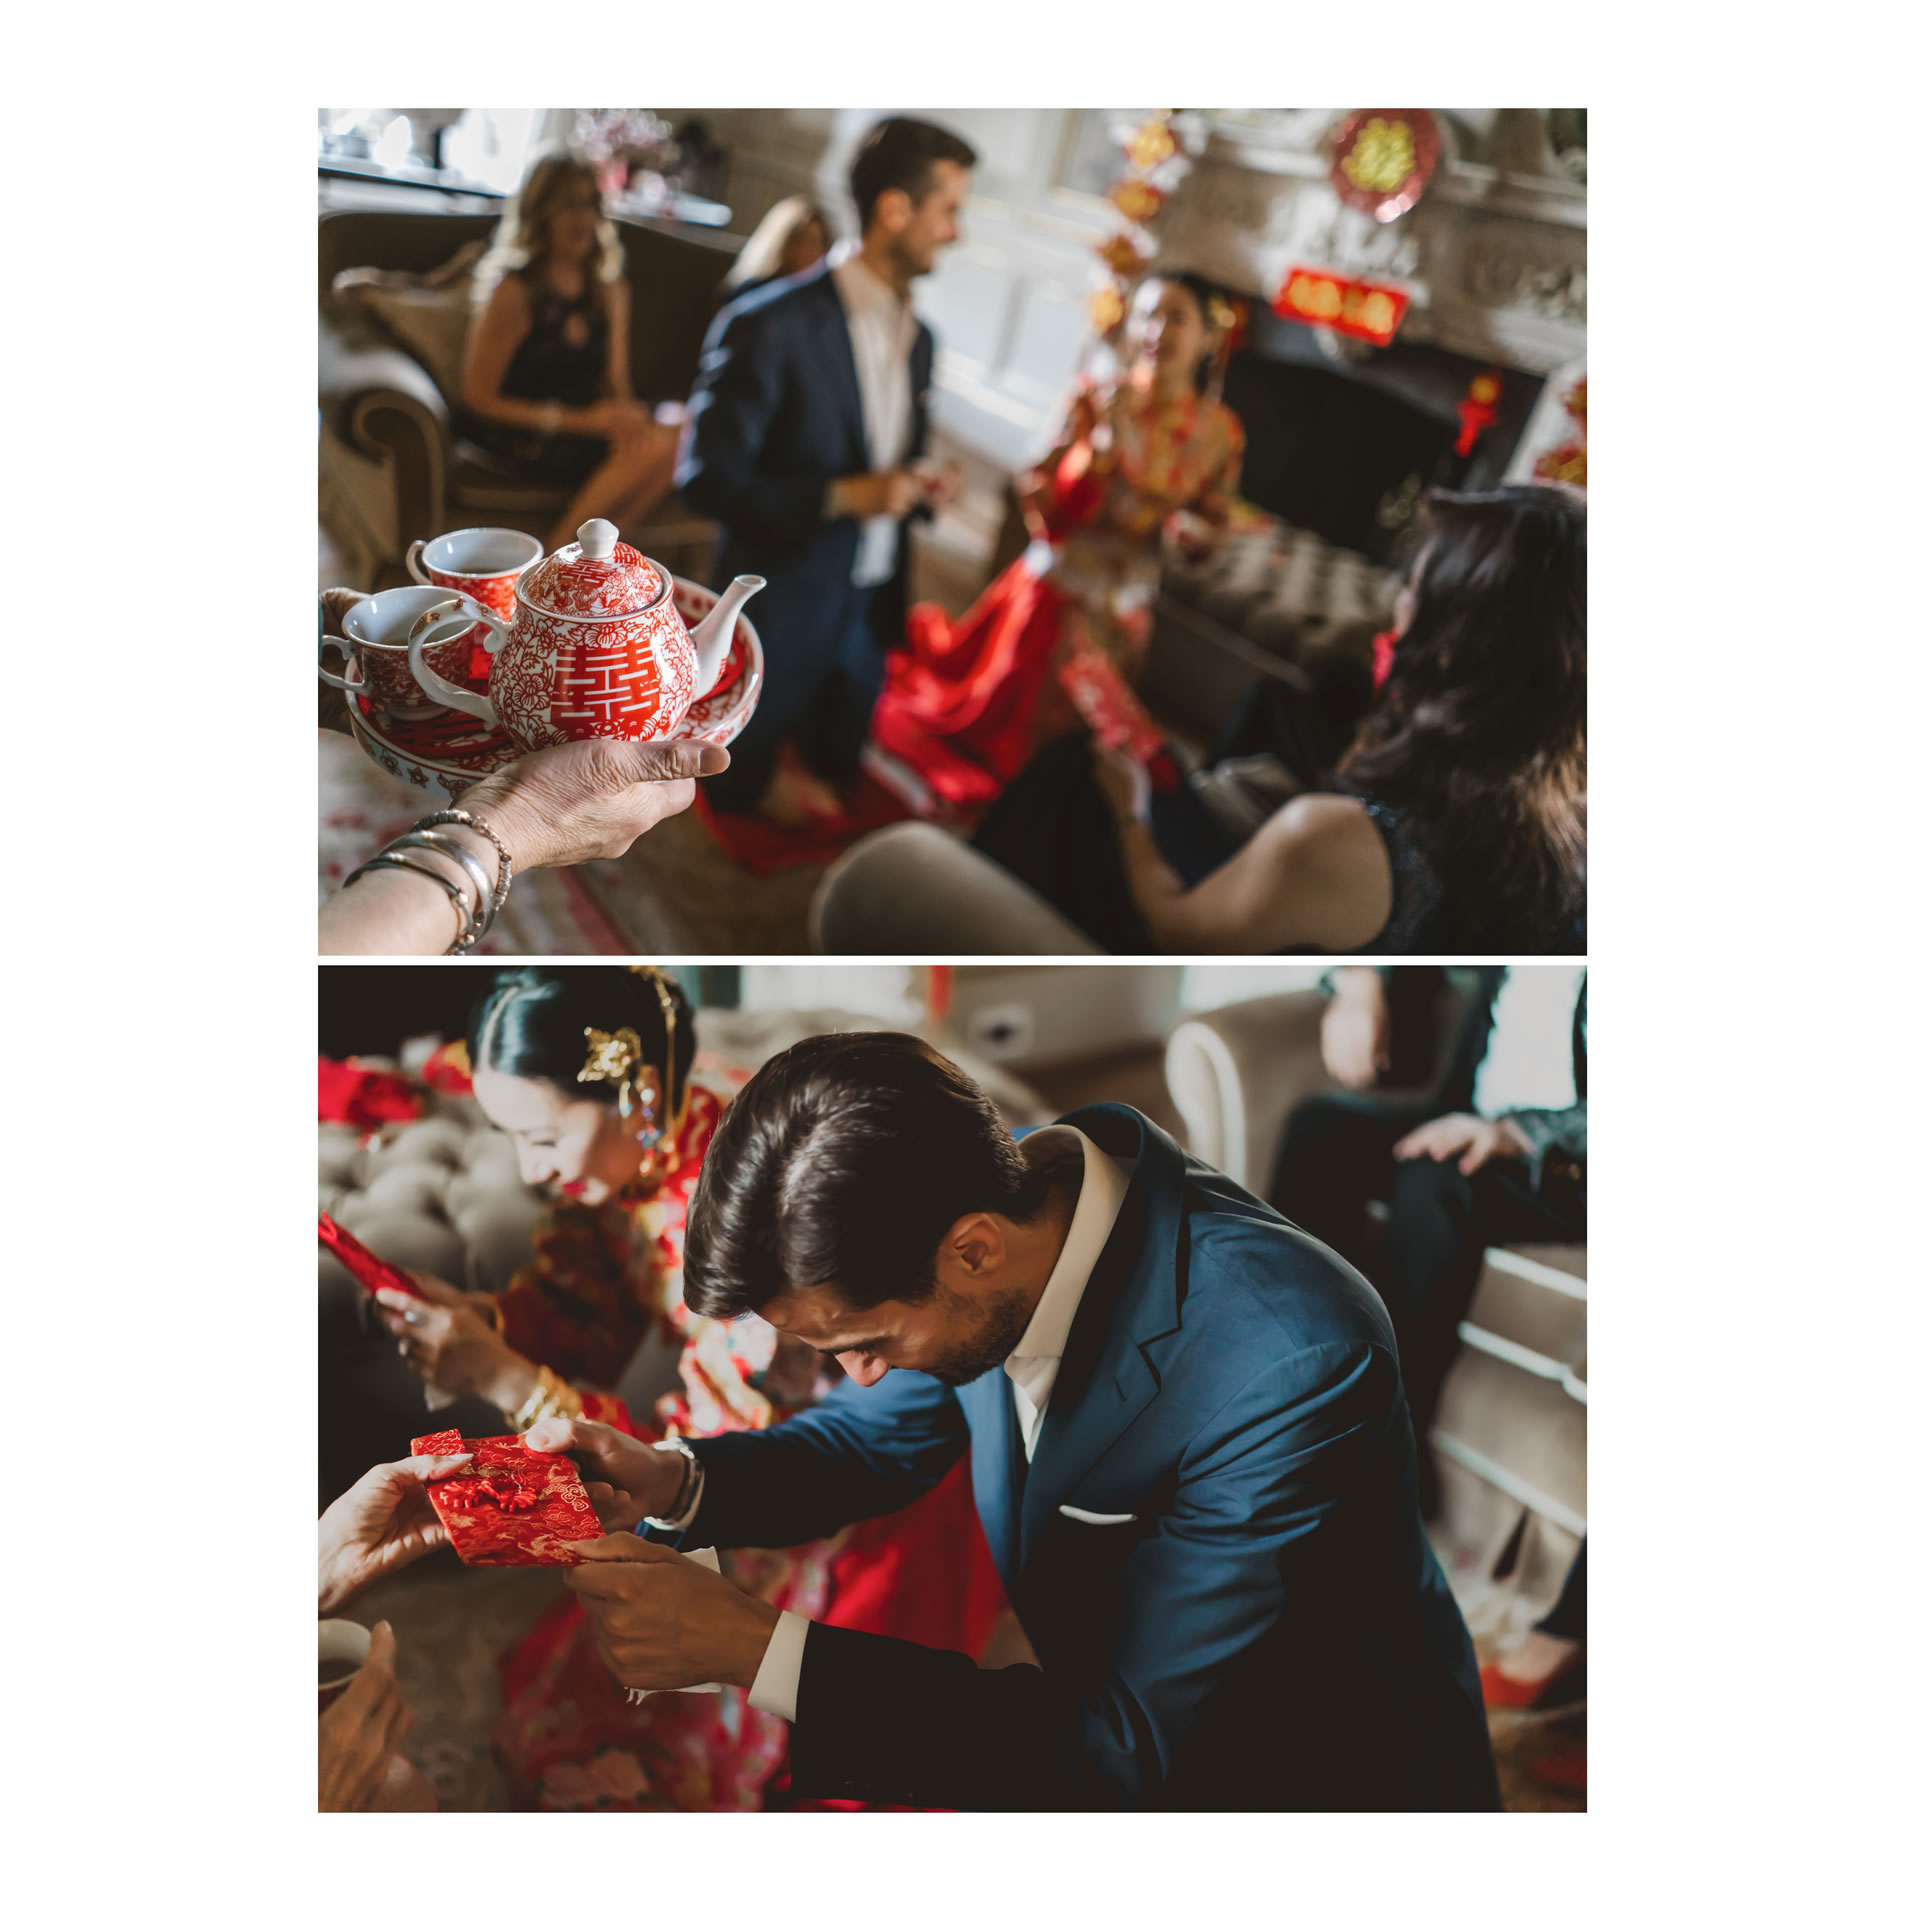 Luxury wedding in Florence (with a chinese tea ceremony) - 3 :: Luxury wedding in Florence (with a chinese tea ceremony) :: Luxury wedding photography - 2 :: Luxury wedding in Florence (with a chinese tea ceremony) - 3